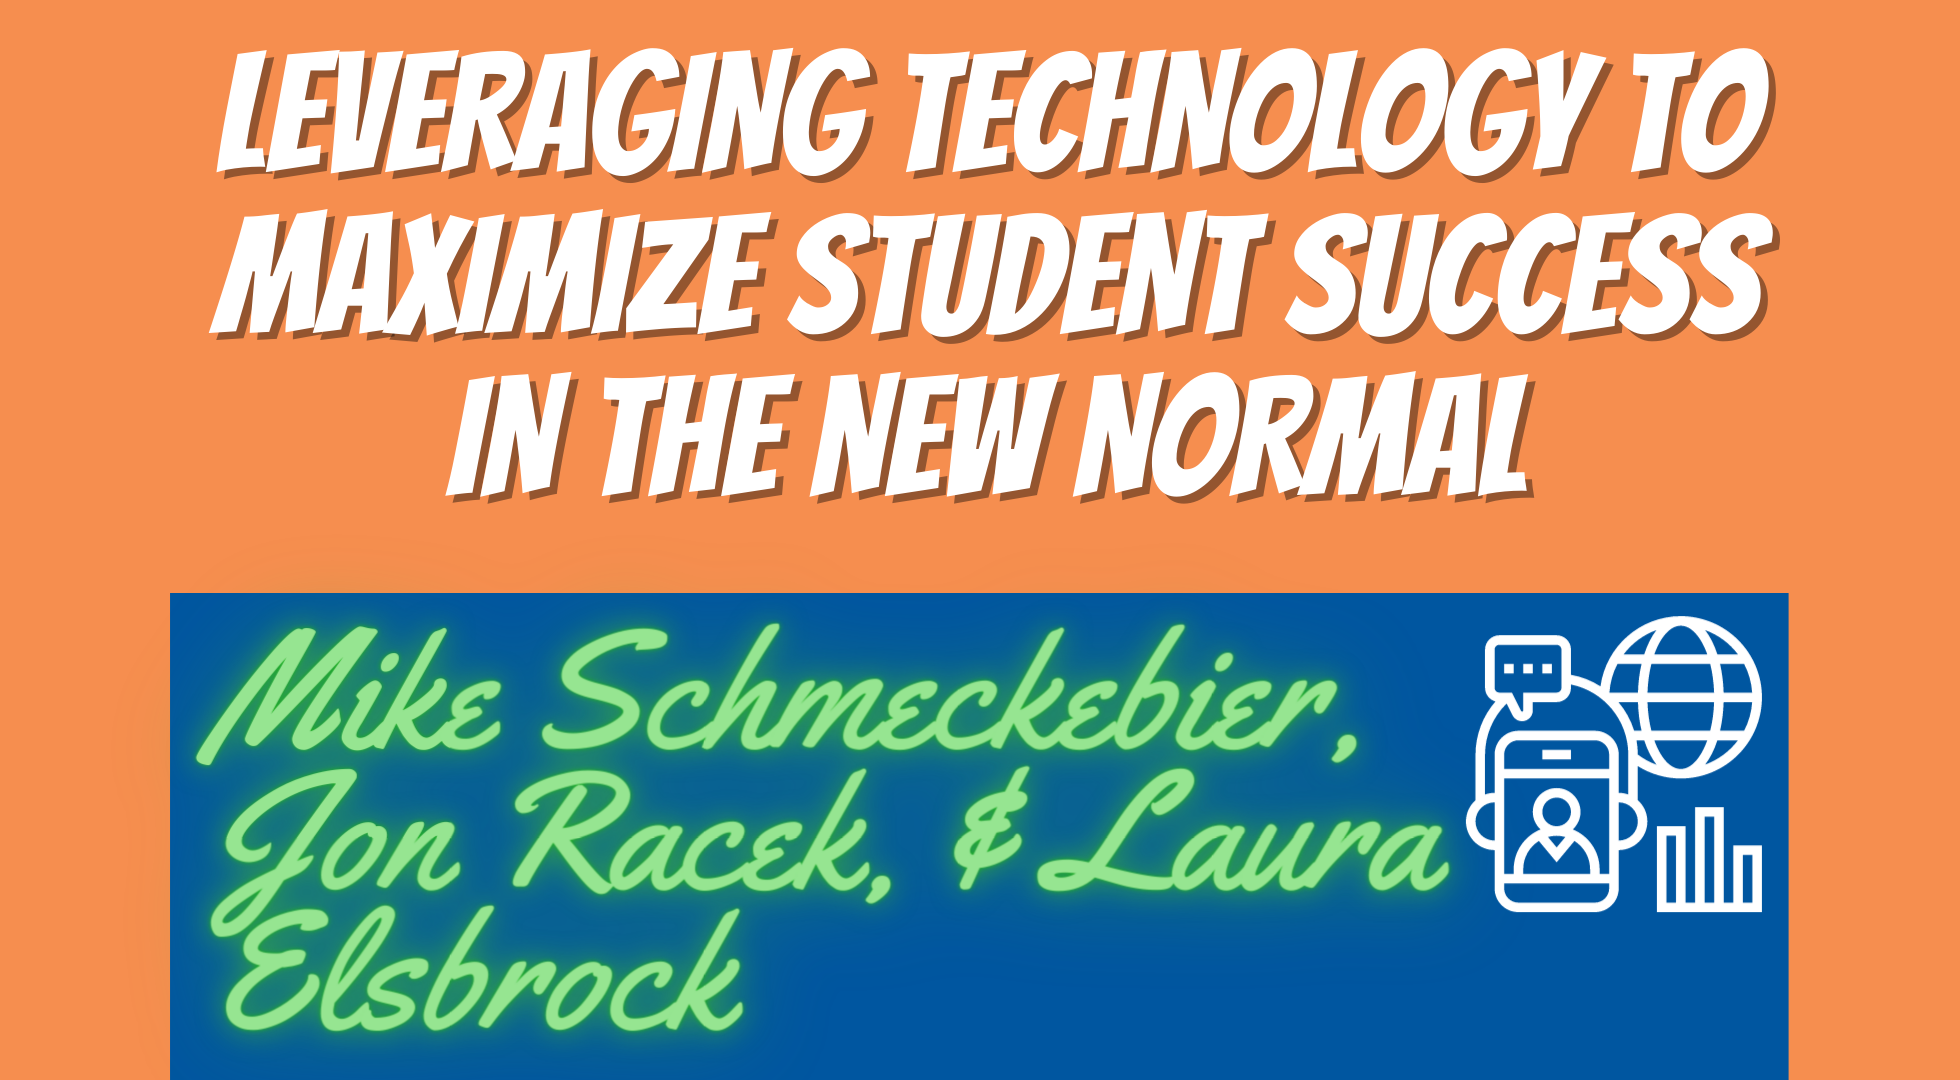 Leveraging Technology to Maximize Student Success in the New Normal